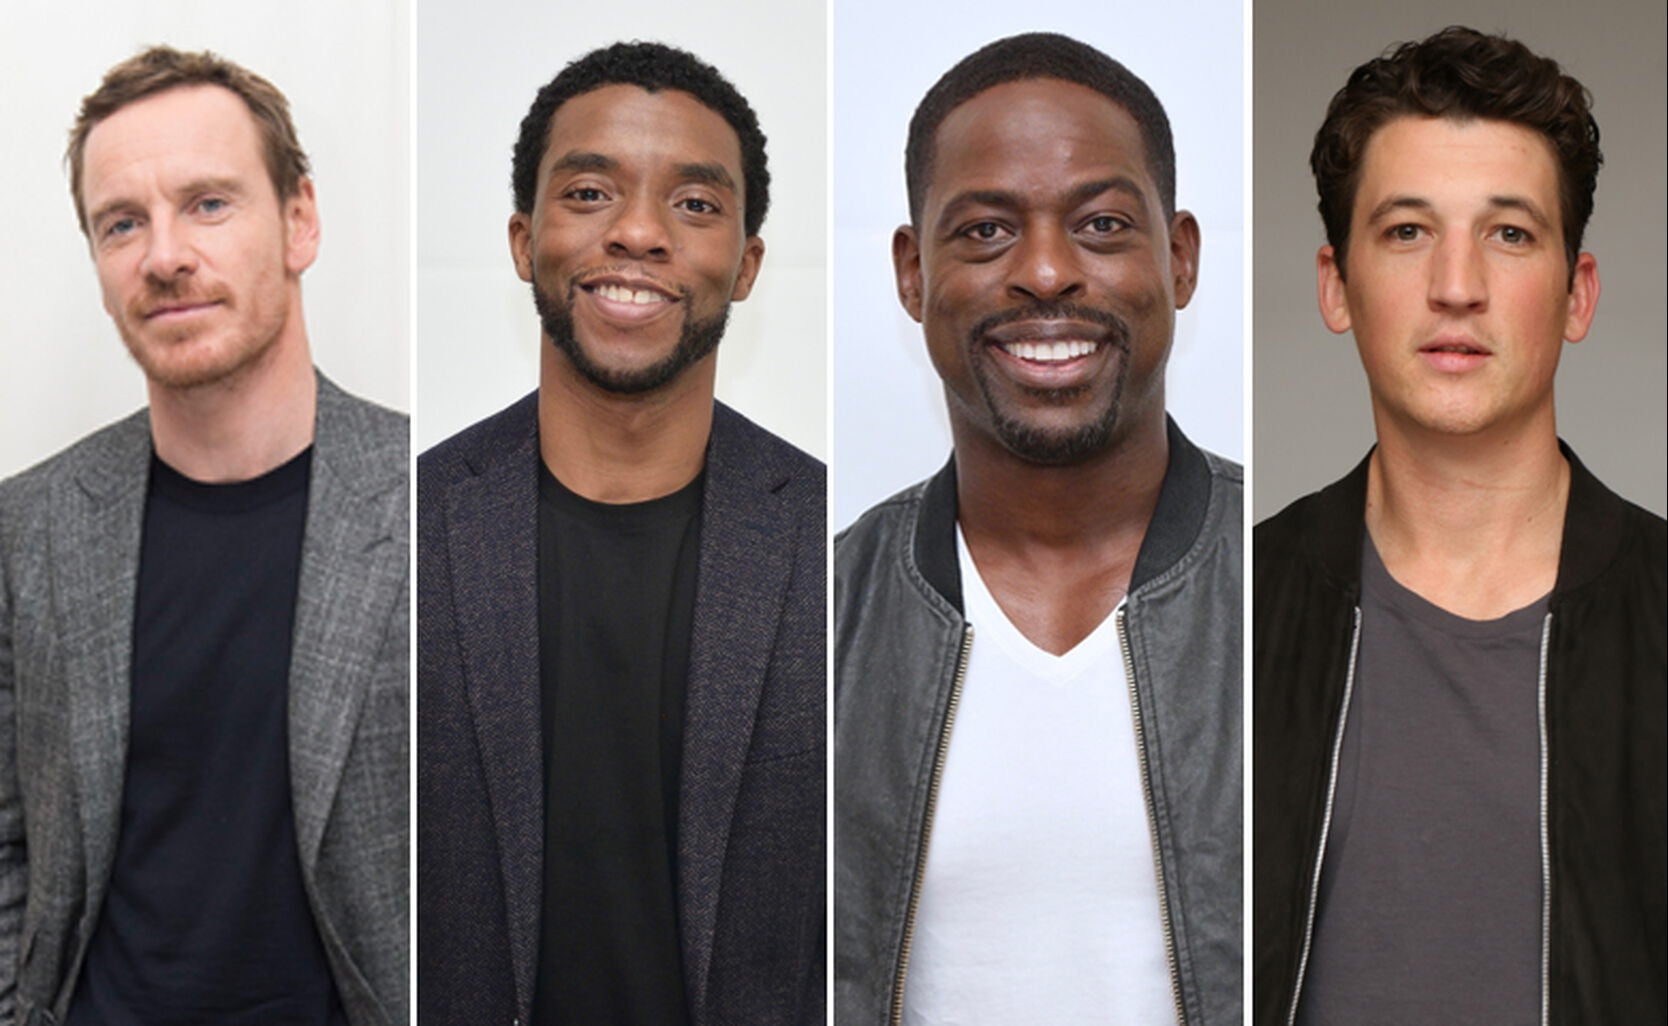 Michael Fassbender, Chadwick Boseman, Sterling K. Brown and Miles Teller